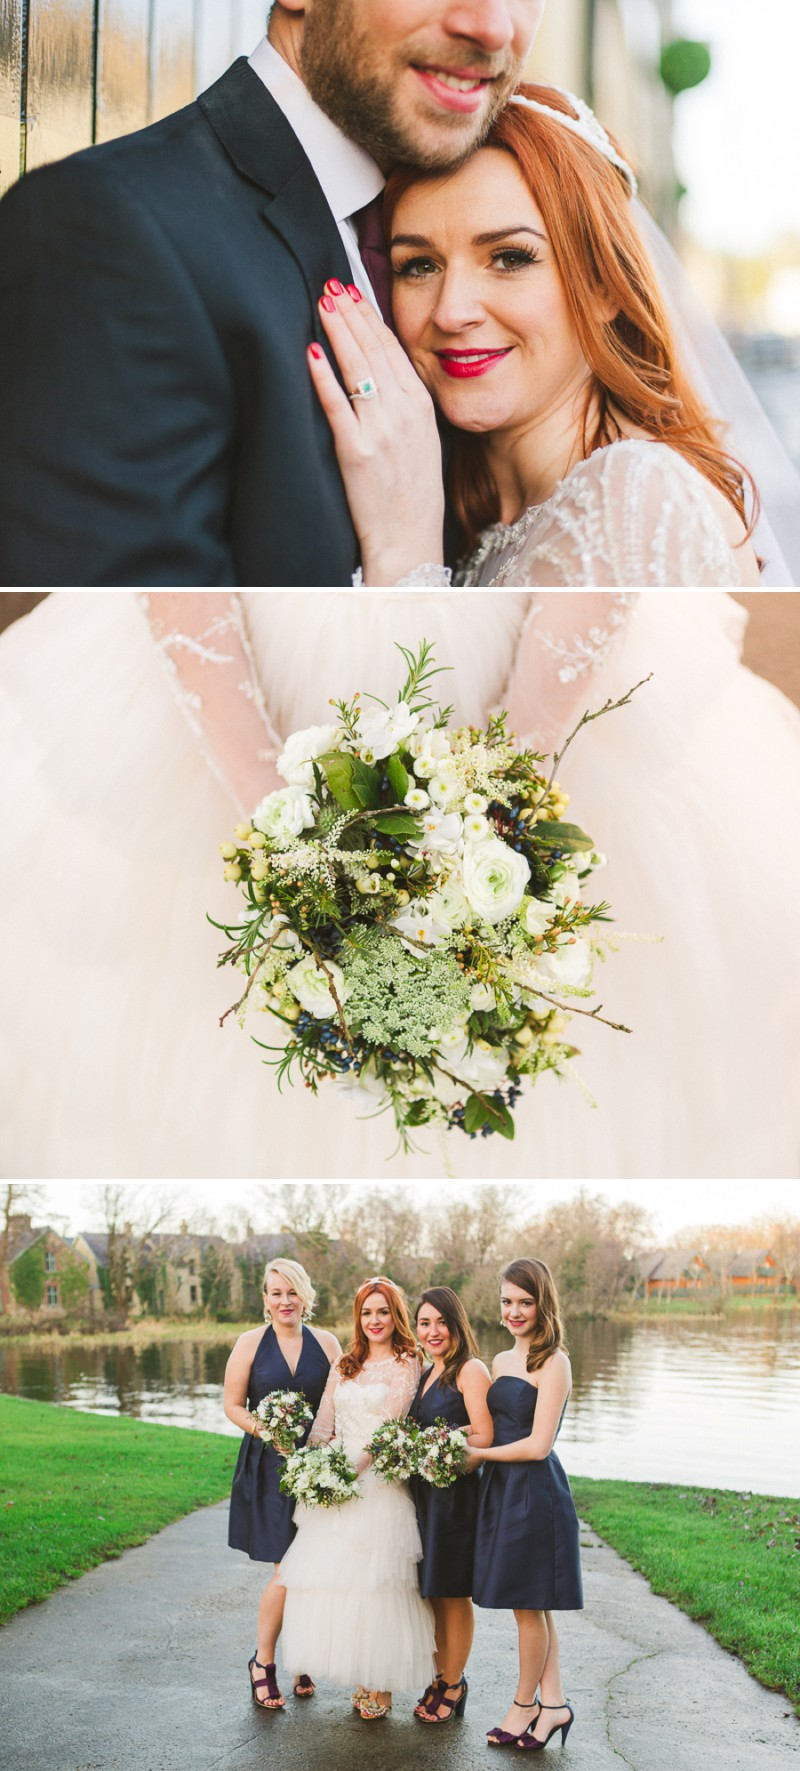 A New Year's Eve Winter Wedding With A Vintage Tulle Dress And Golden Gucci Shoes On Lusty Beg Island In Ireland With Blue Bridesmaid BHLDN Dresses By Sharon Kee Photography._0008